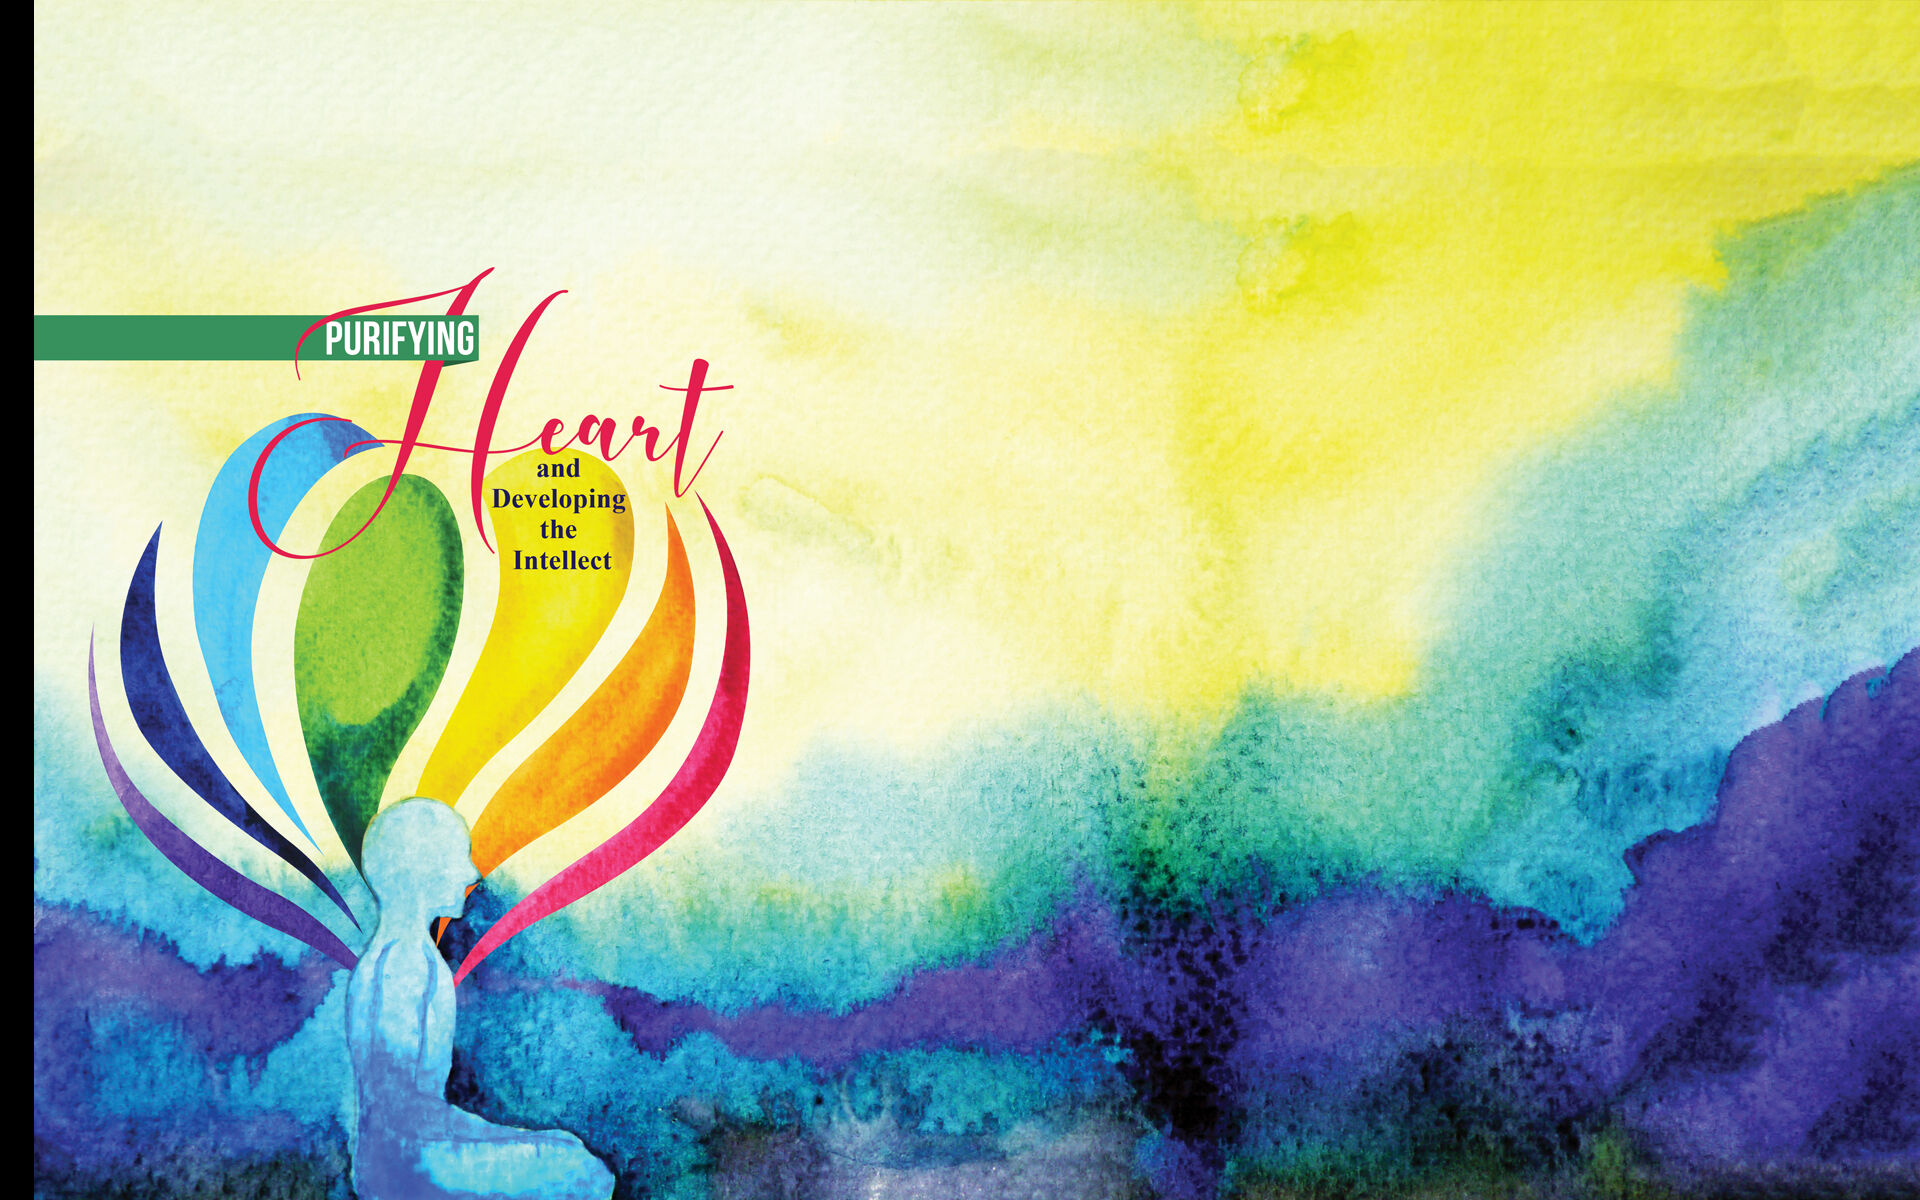 Purifying the Heart and Developing the Intellect